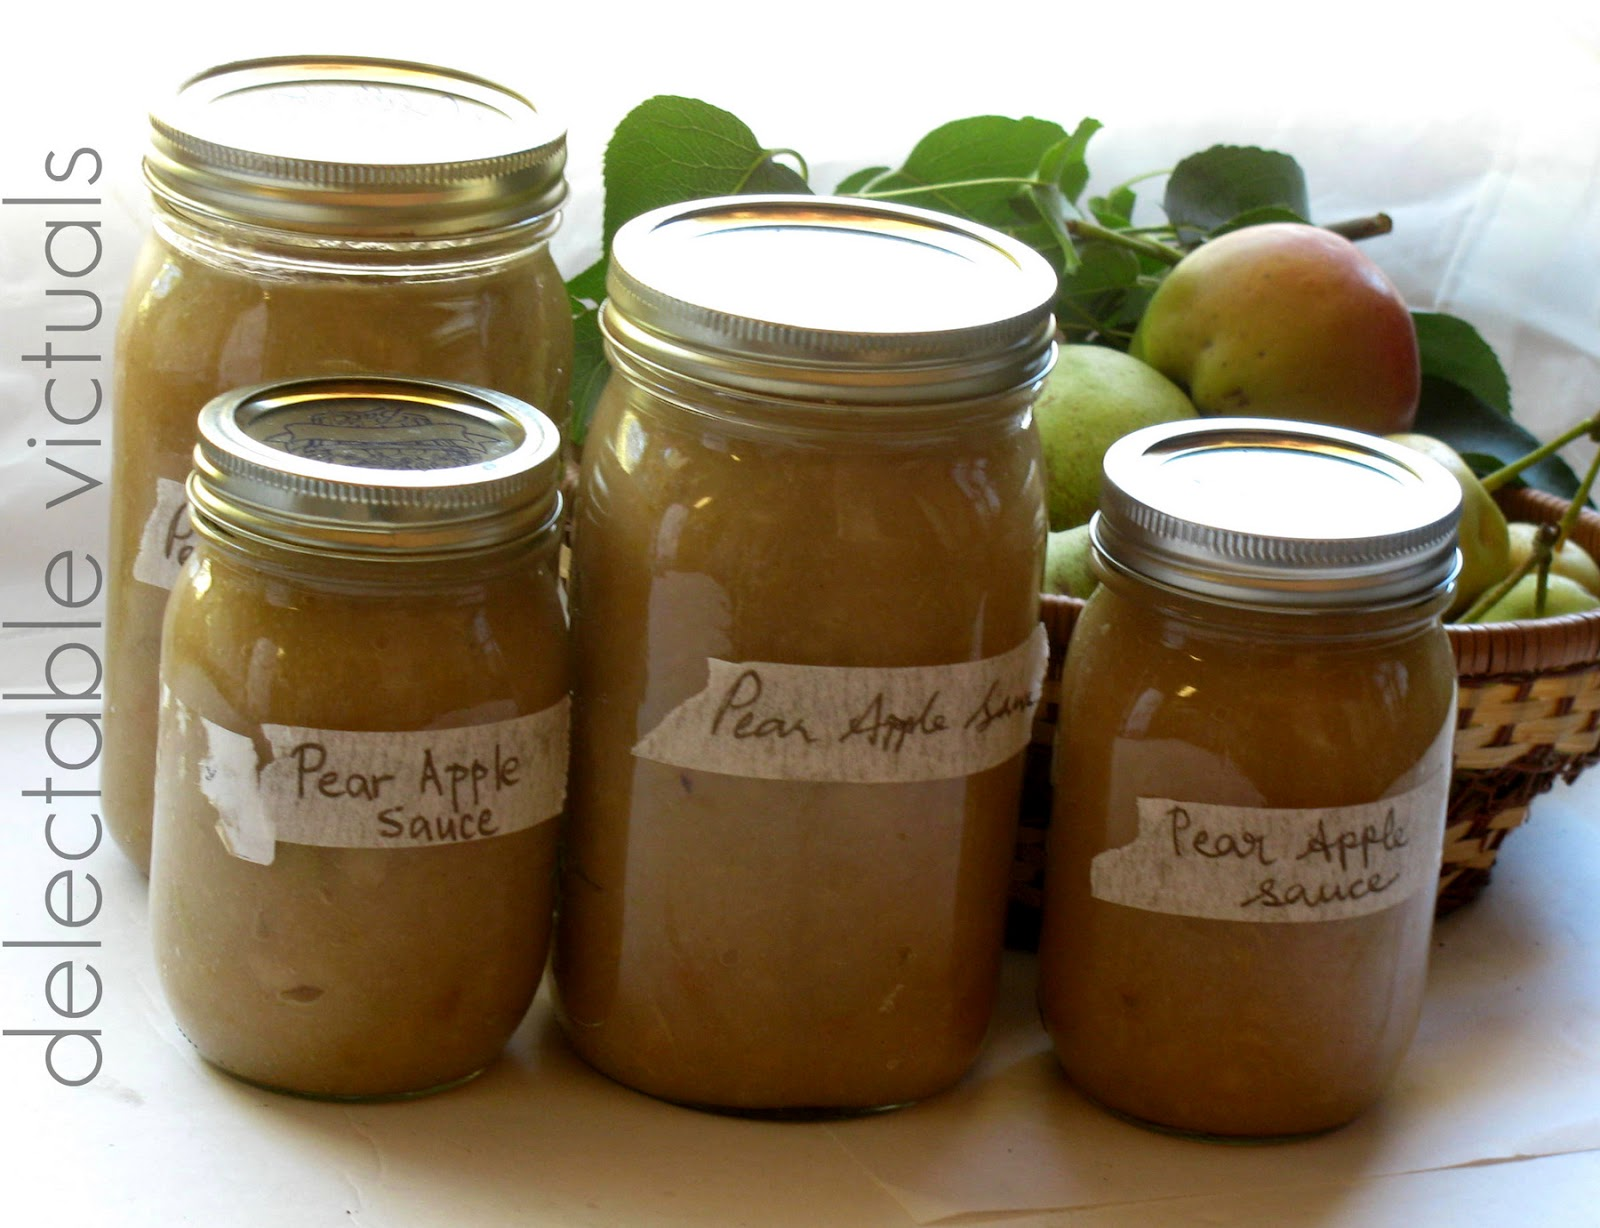 Delectable Victuals: Pear Apple Sauce